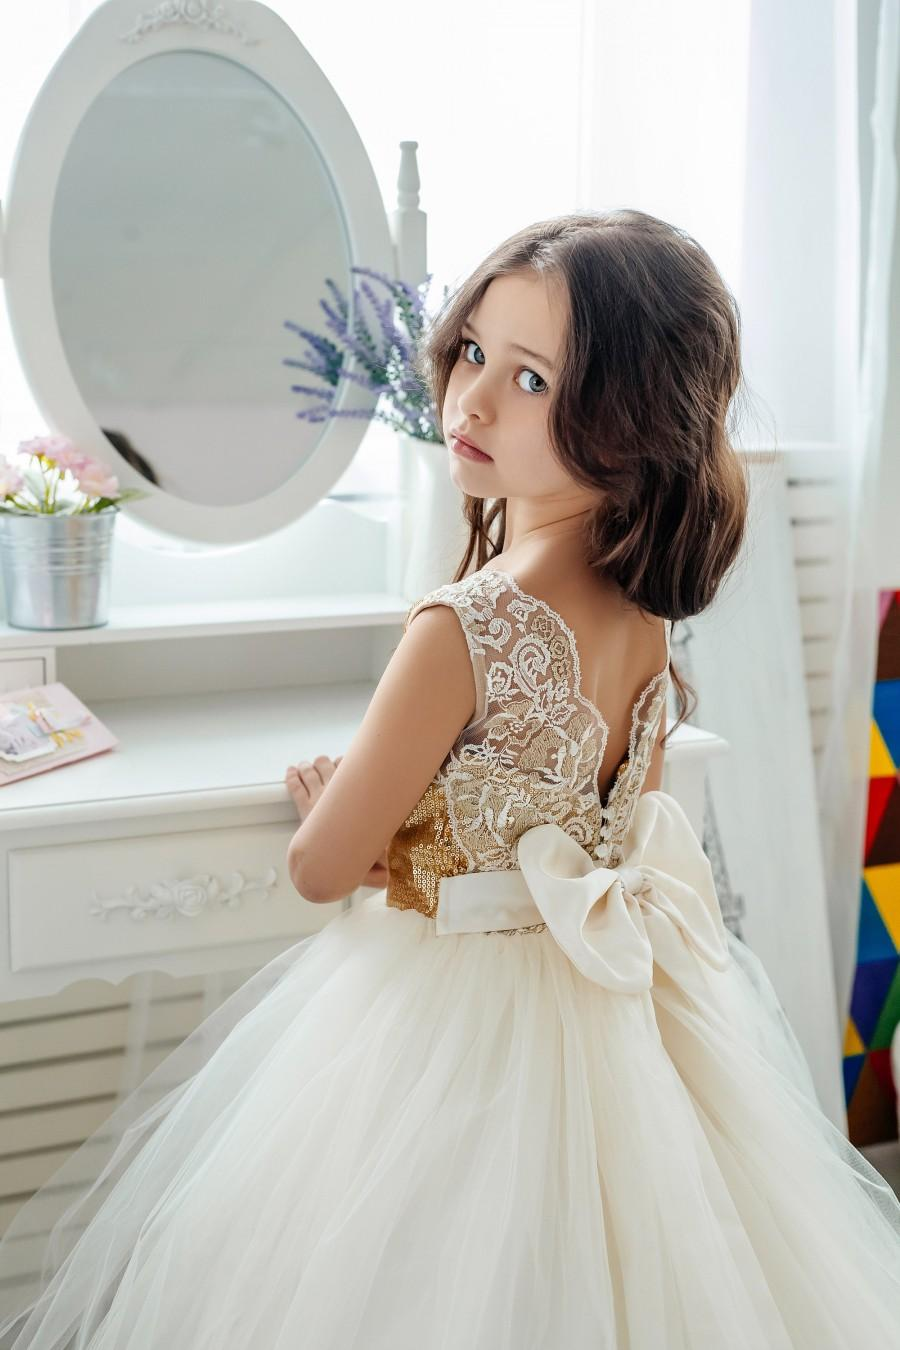 Mariage - Tulle flower girl dress,lace flower girl dress, country lace dress, gold flower girl dress,Rustic flower girl dress,Flower girl dresses